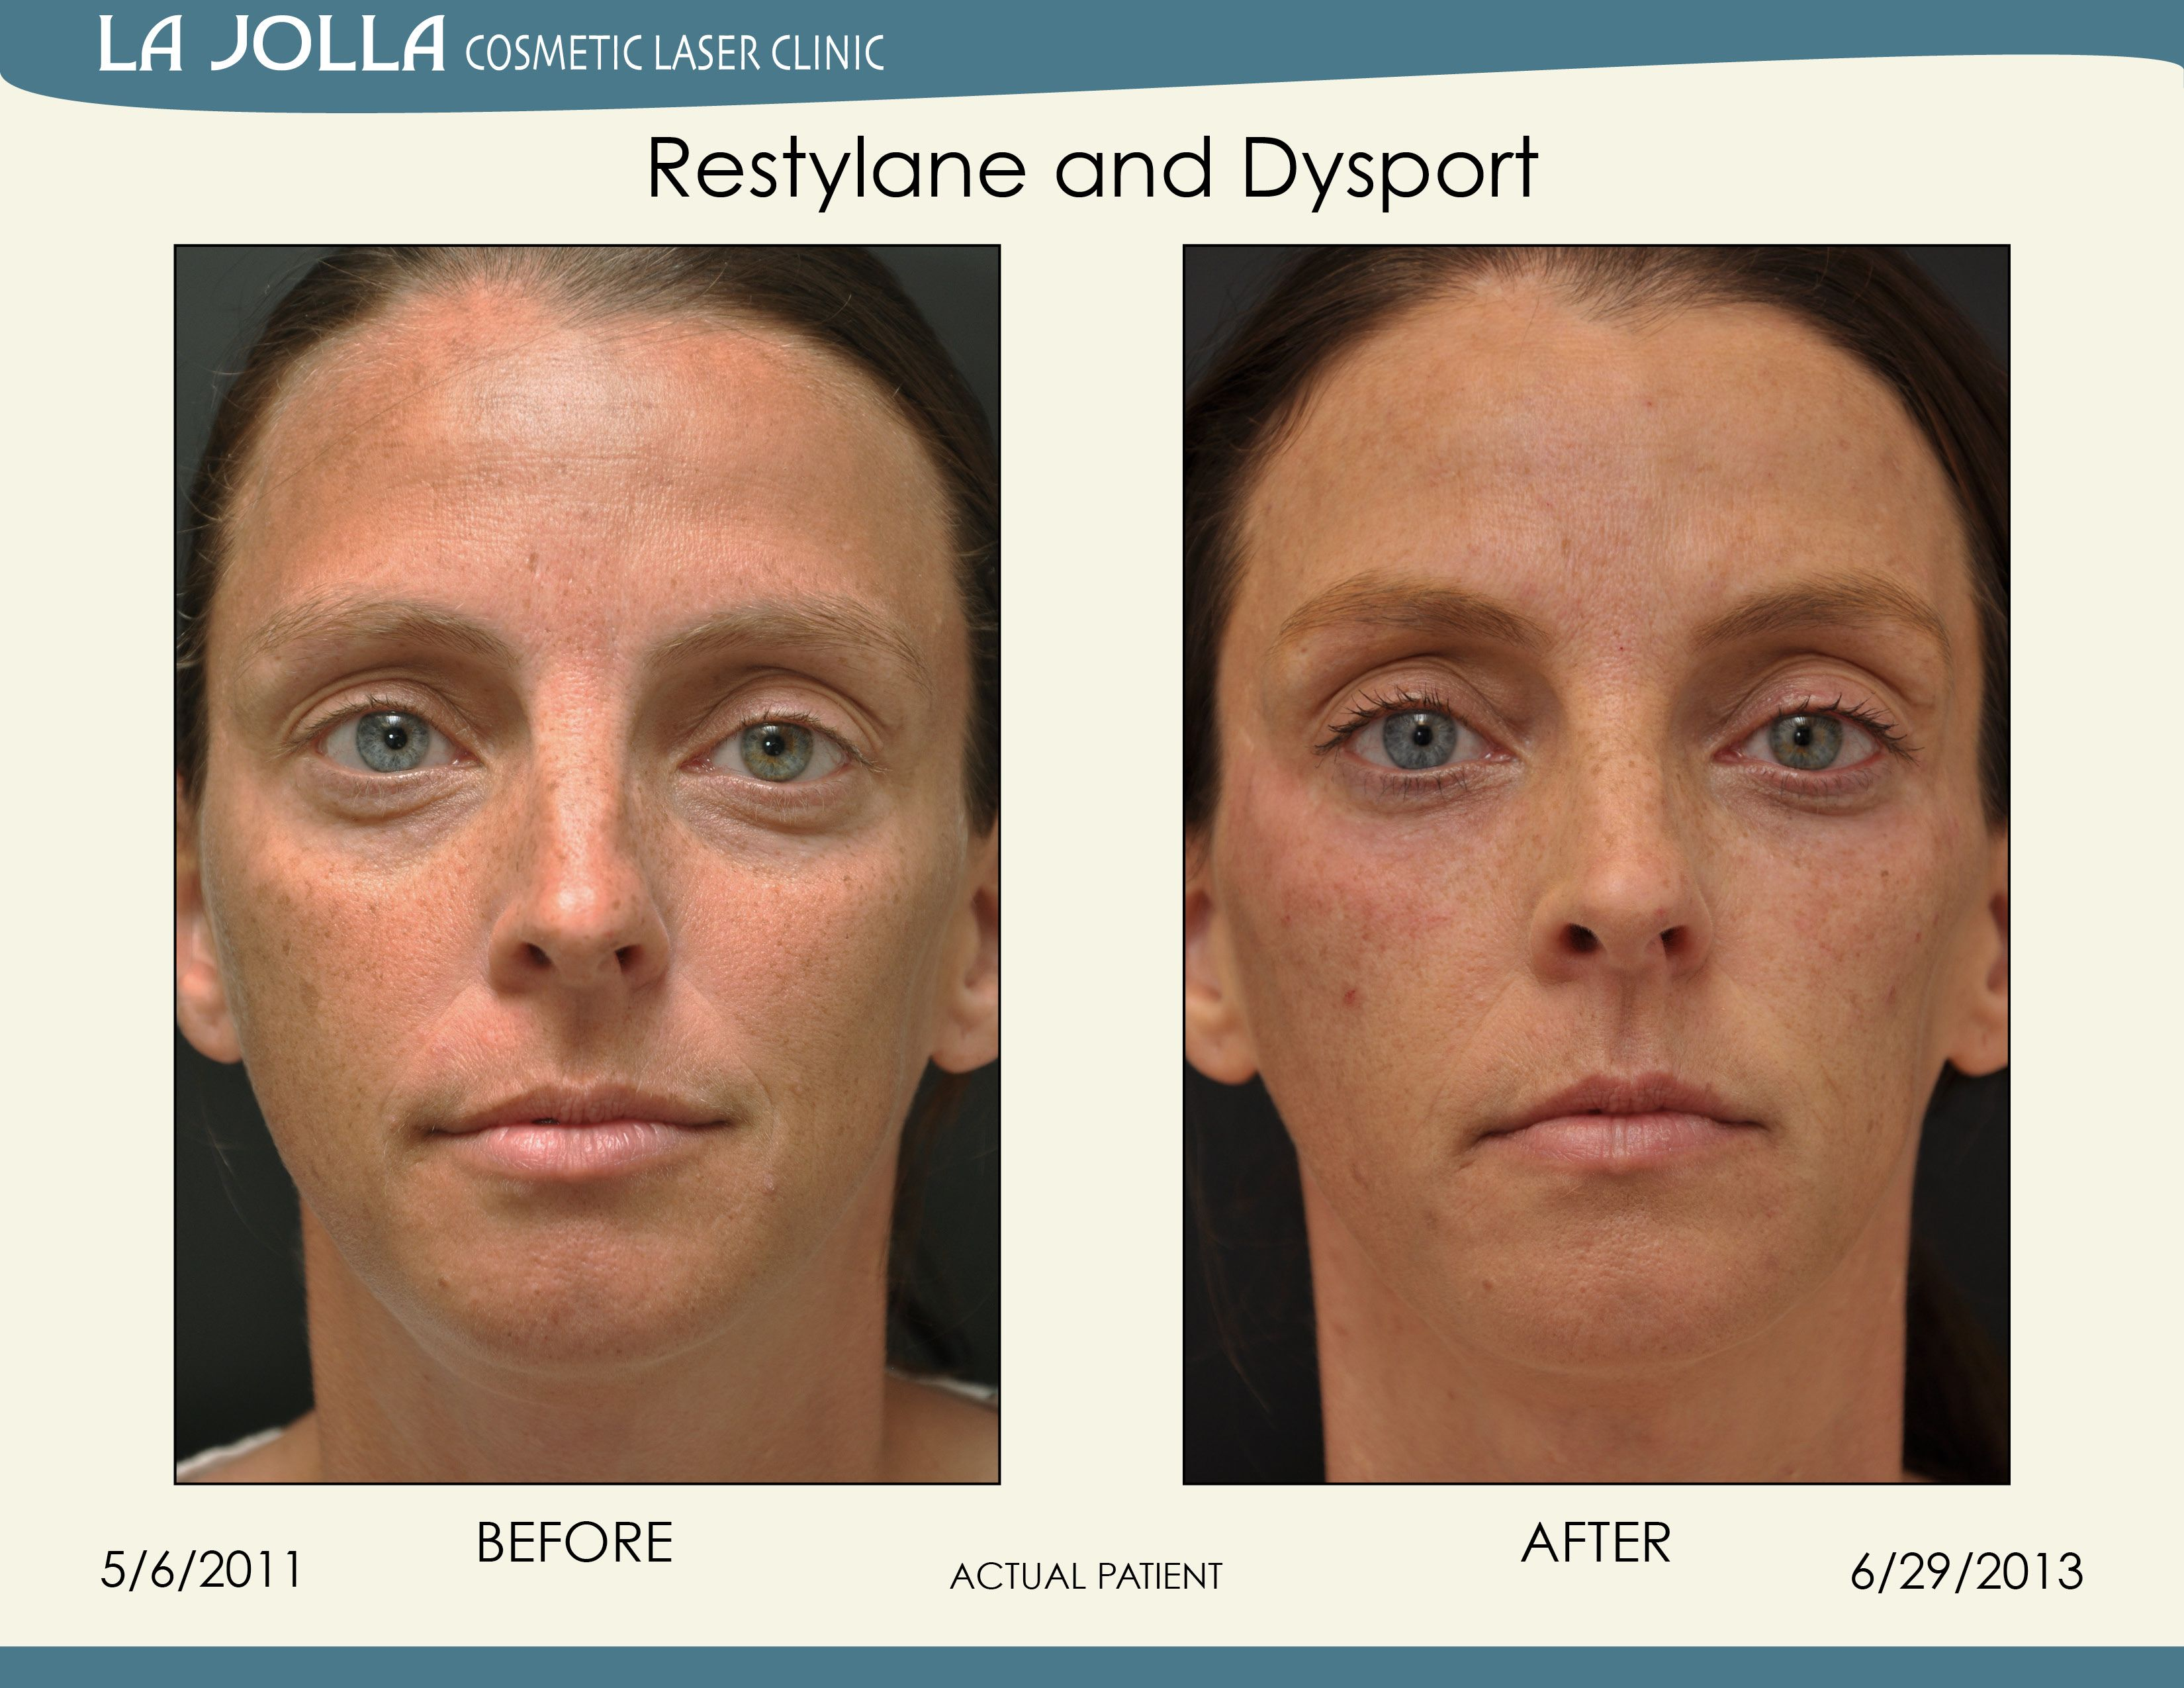 Patient treated with Restylane and Dysport at La Jolla